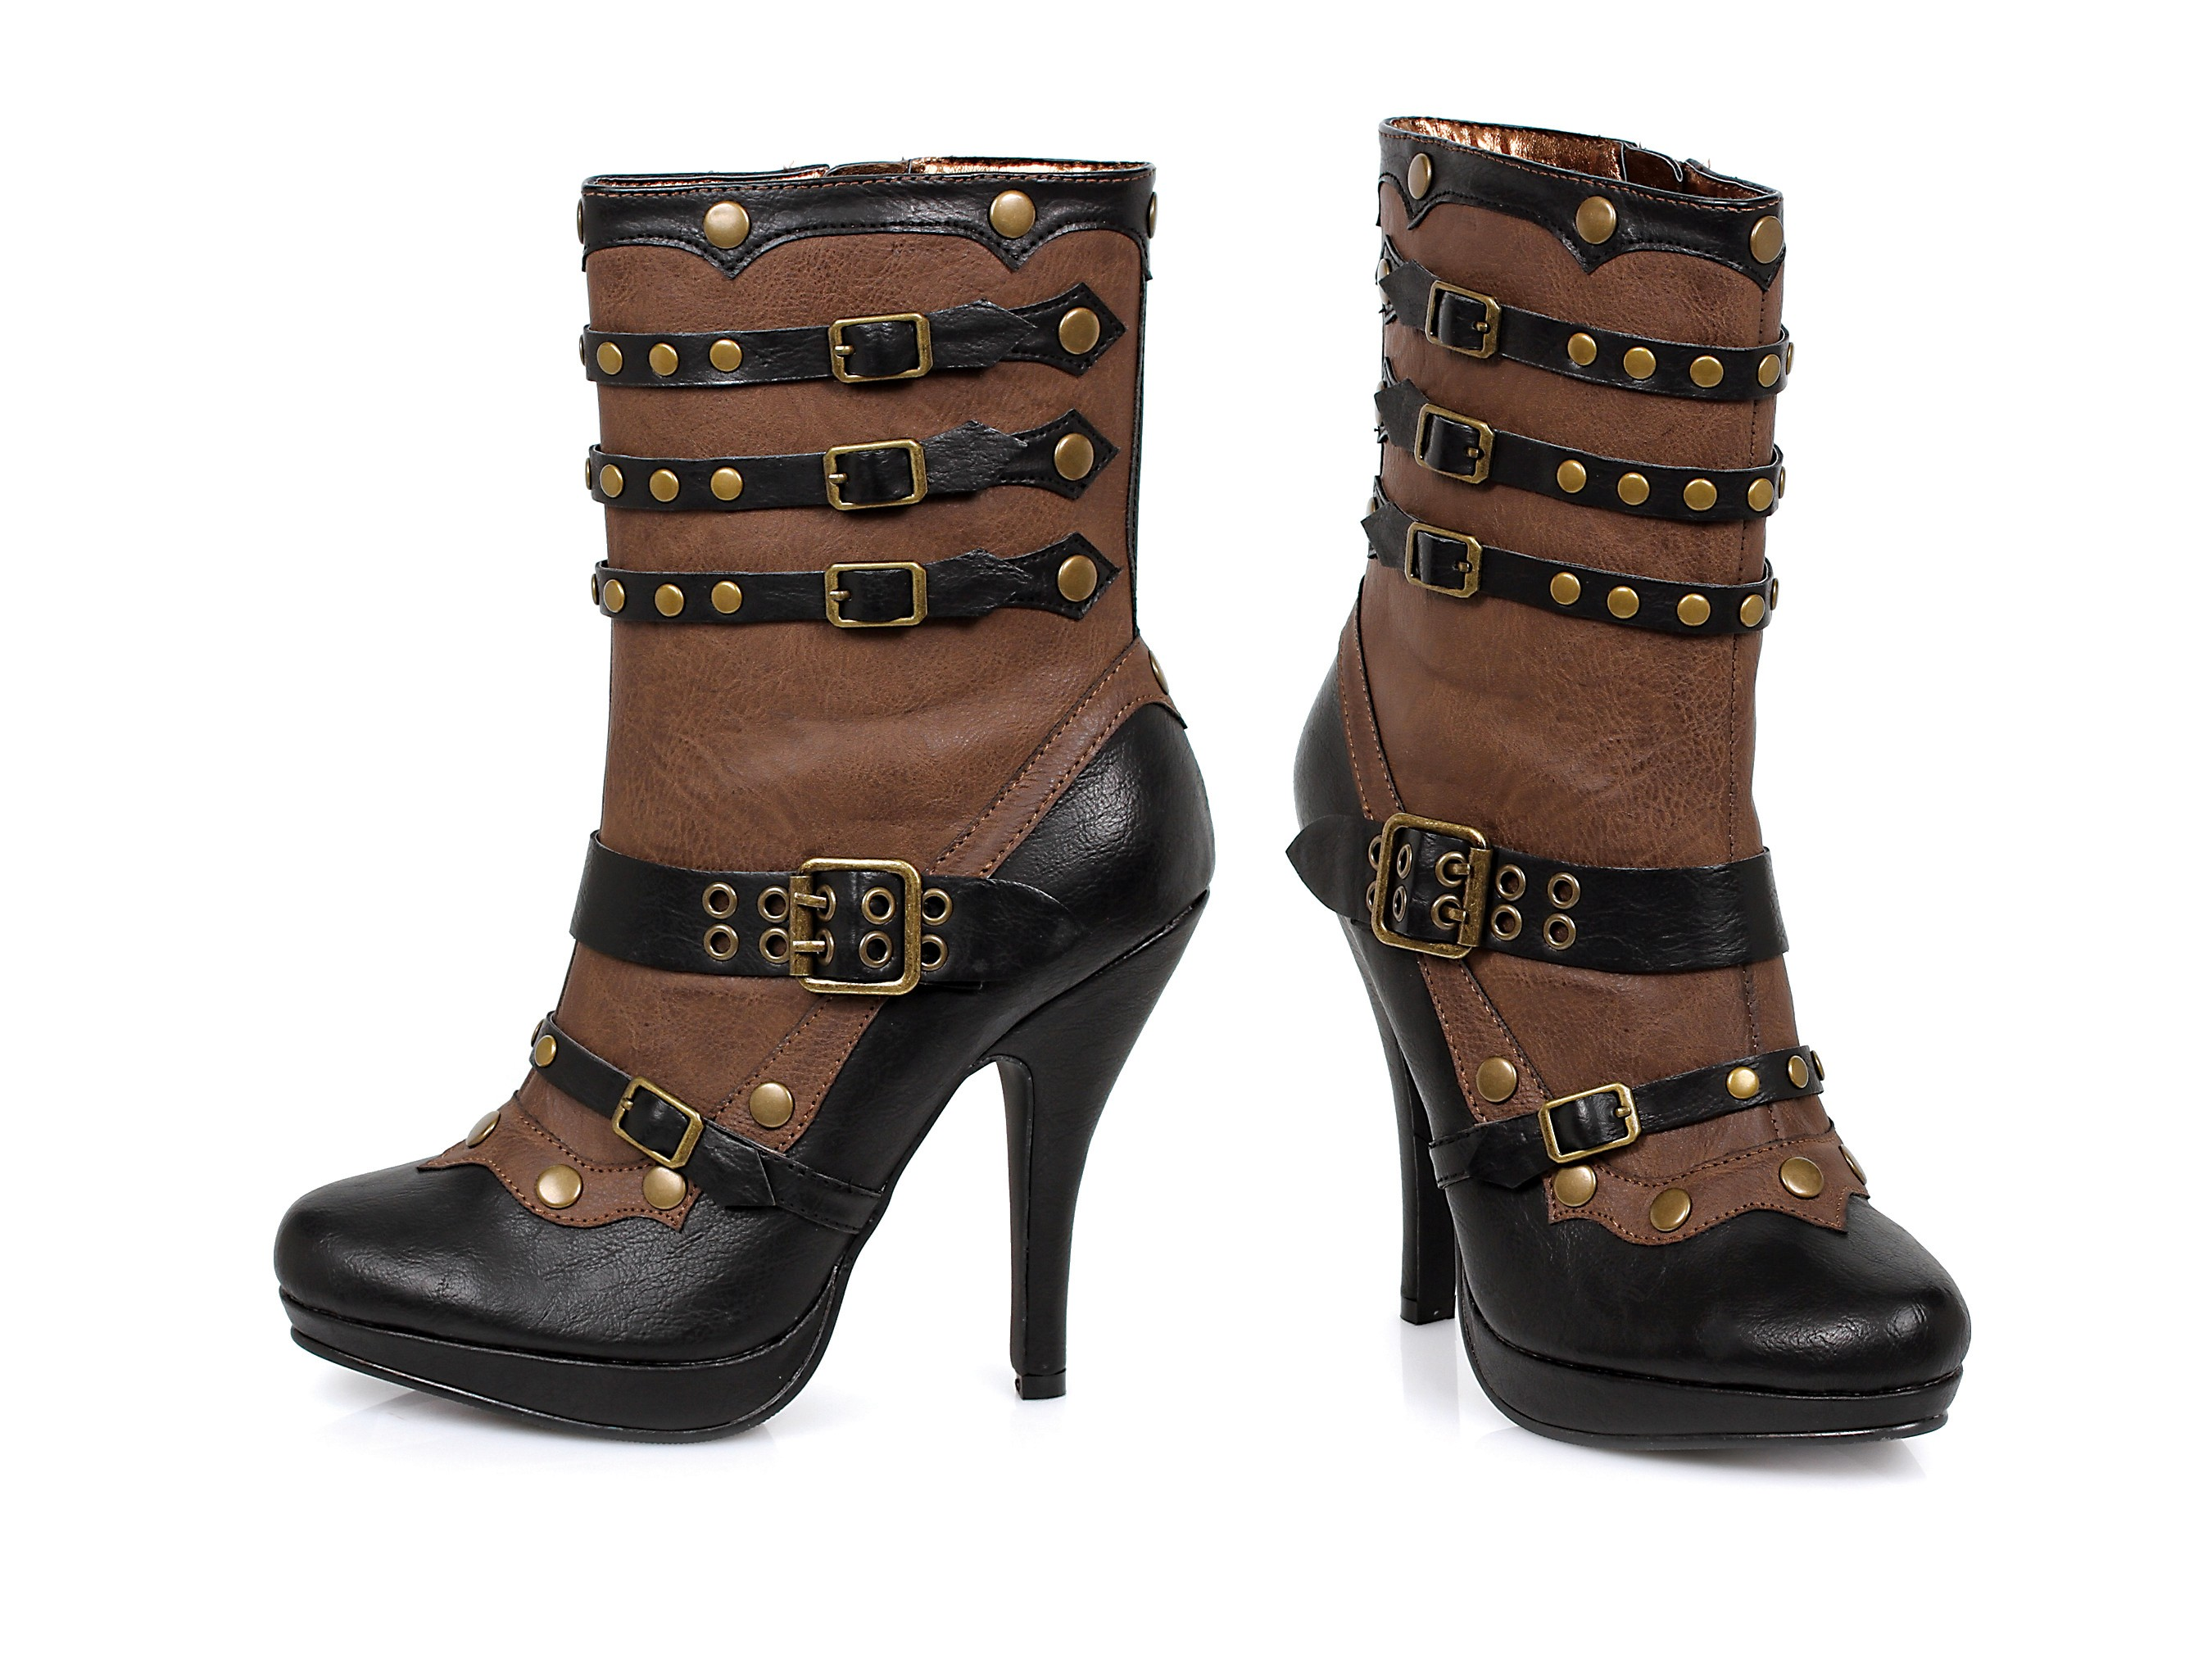 Sweet and Funky Women's Steampunk Booties